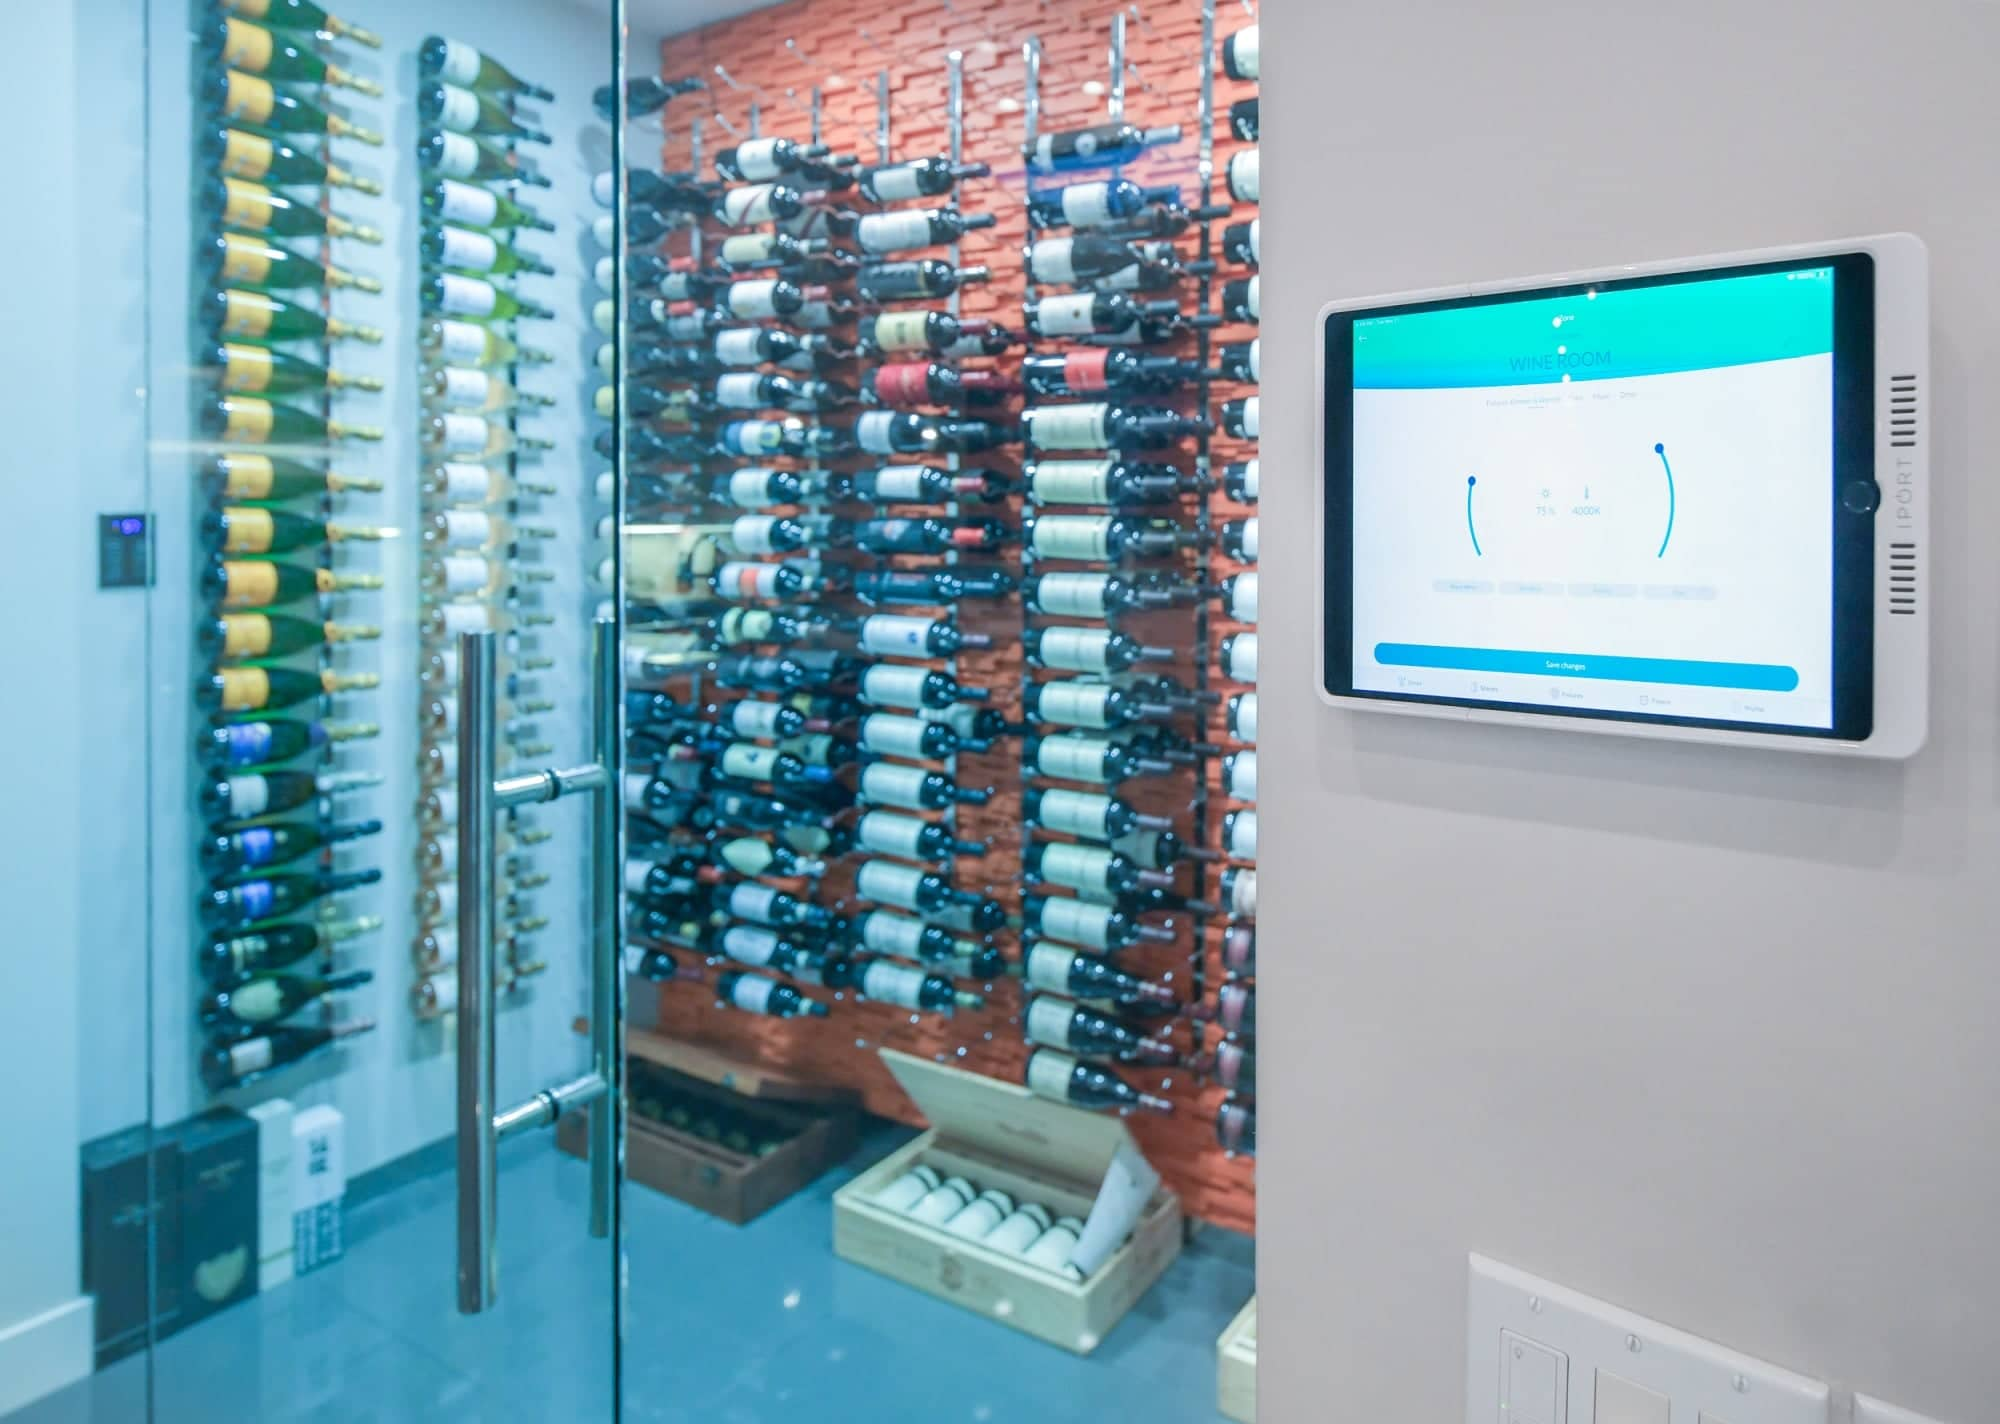 The ability to change the color of the LED lighting is one of the innovative features for this wine cellar. For this photo, the lighting was set to bluish green.